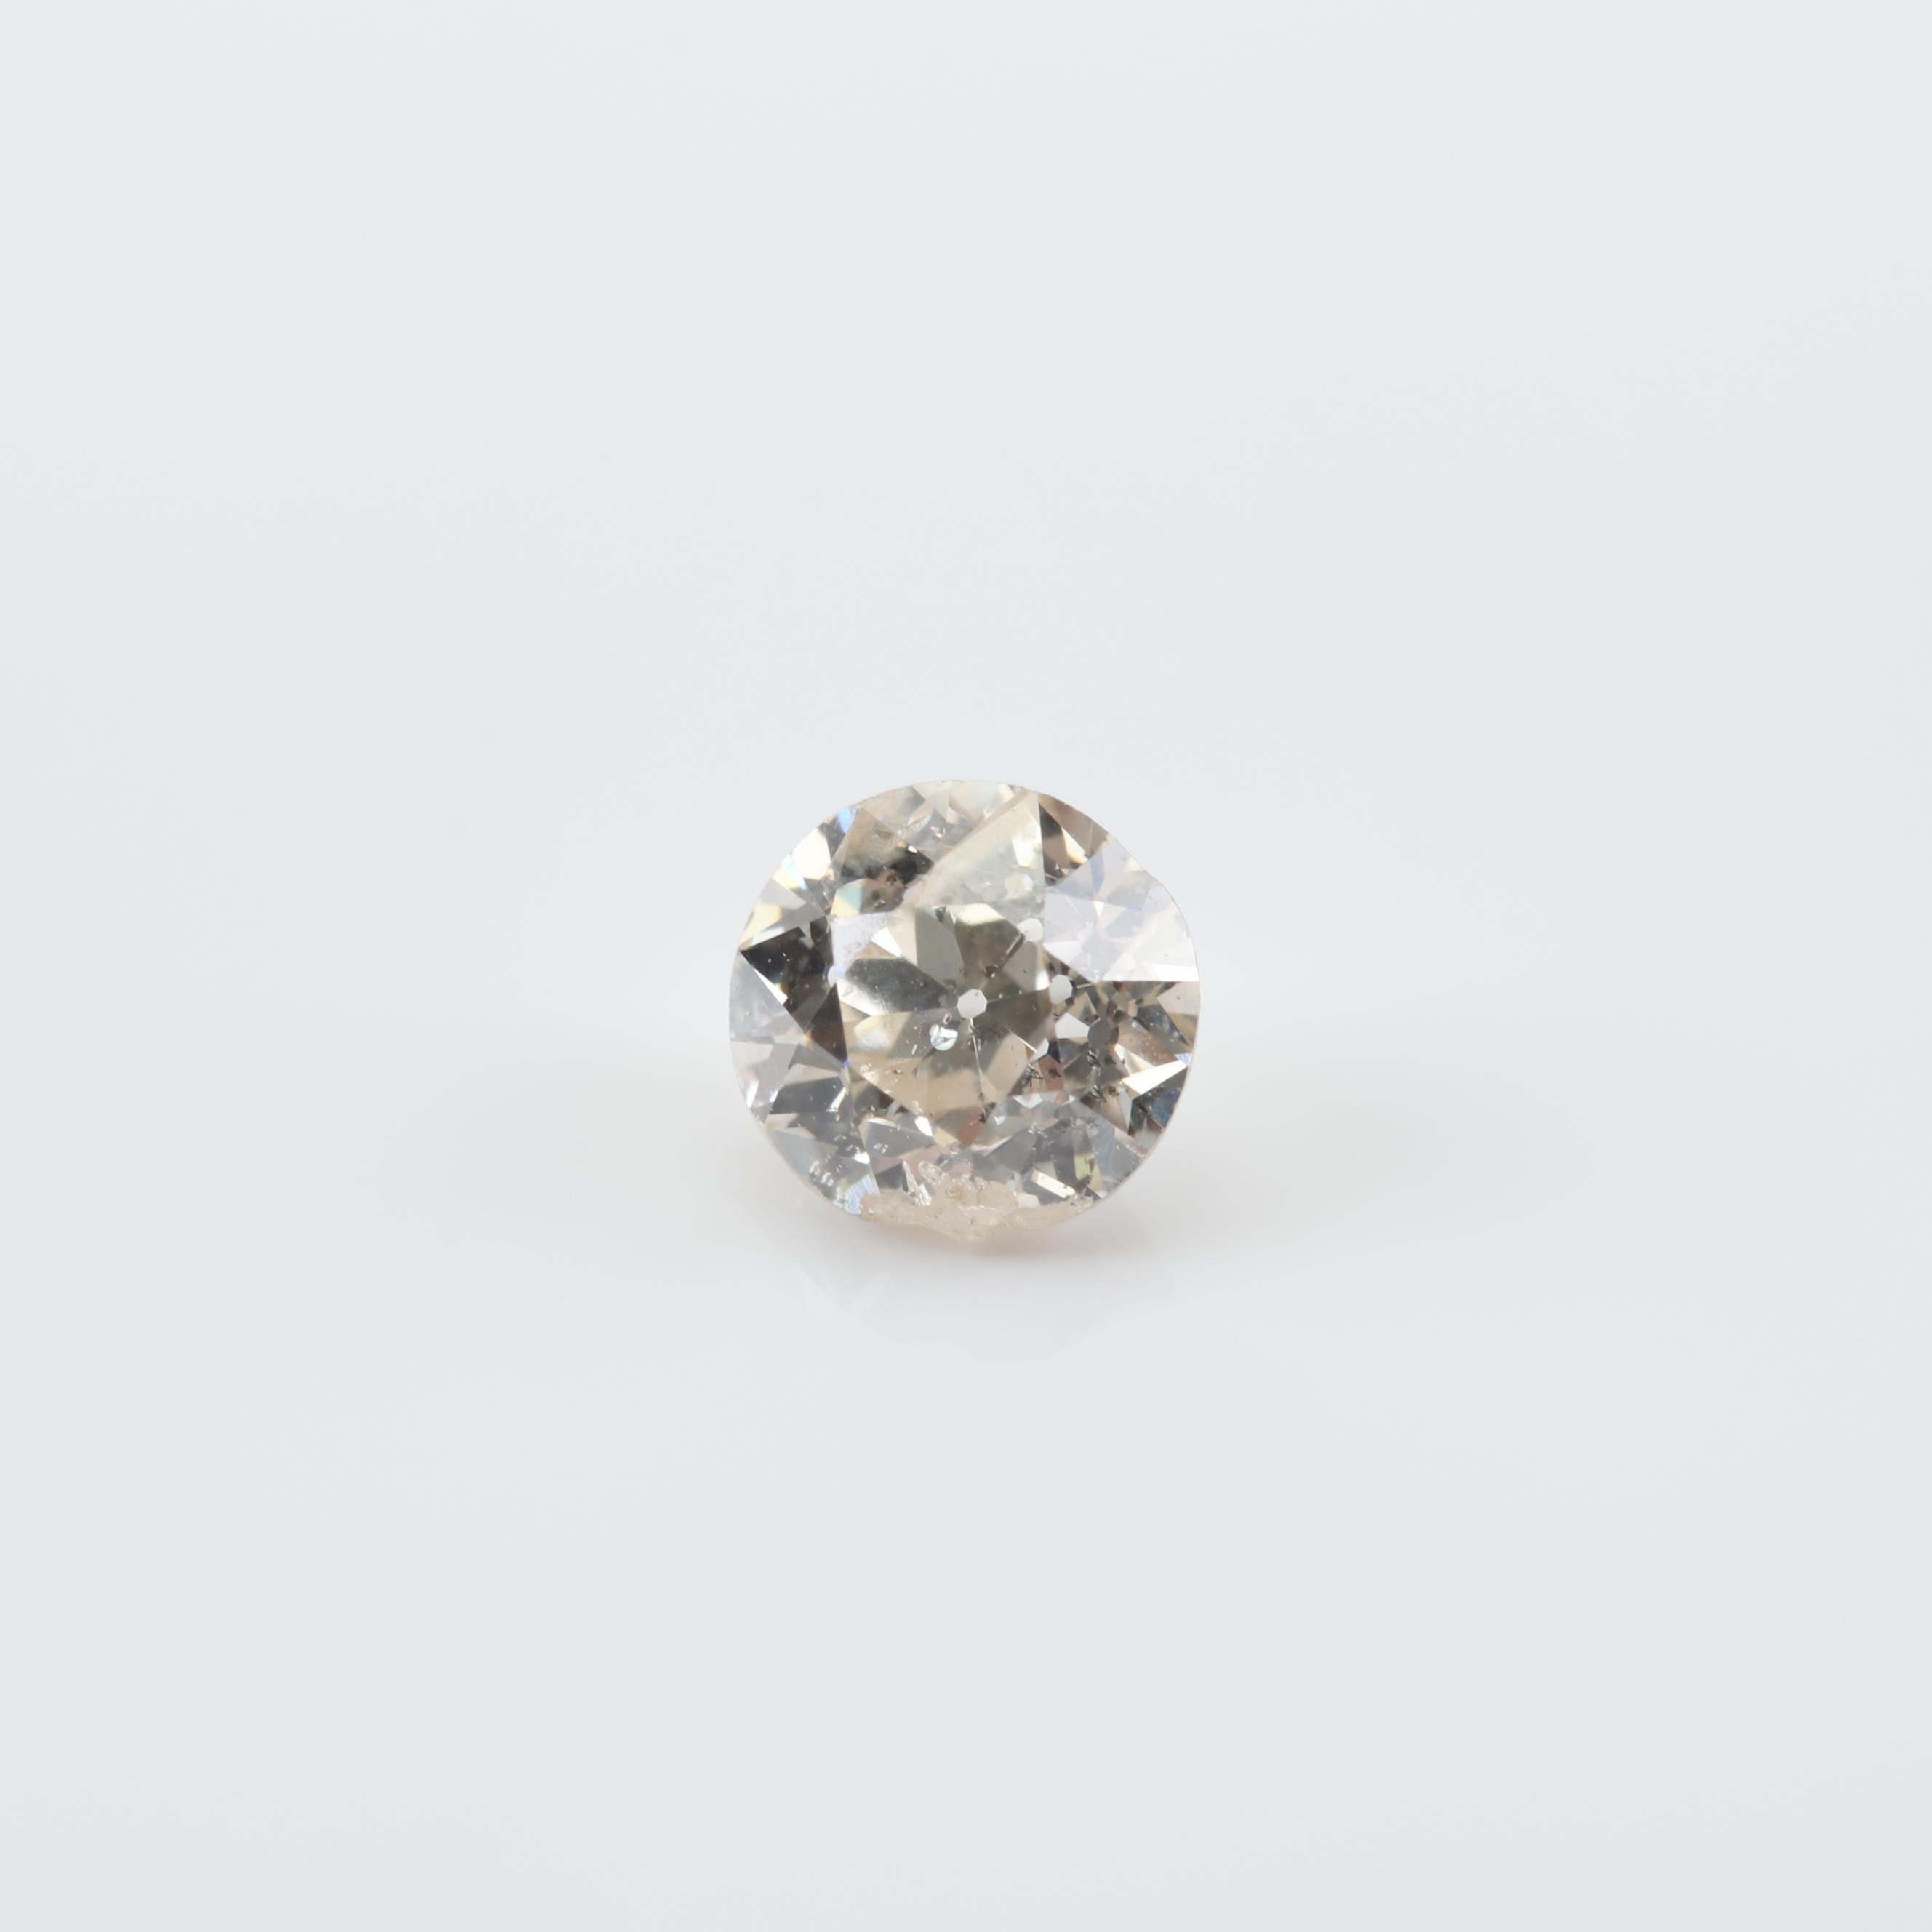 Loose 0.41 CT Diamond